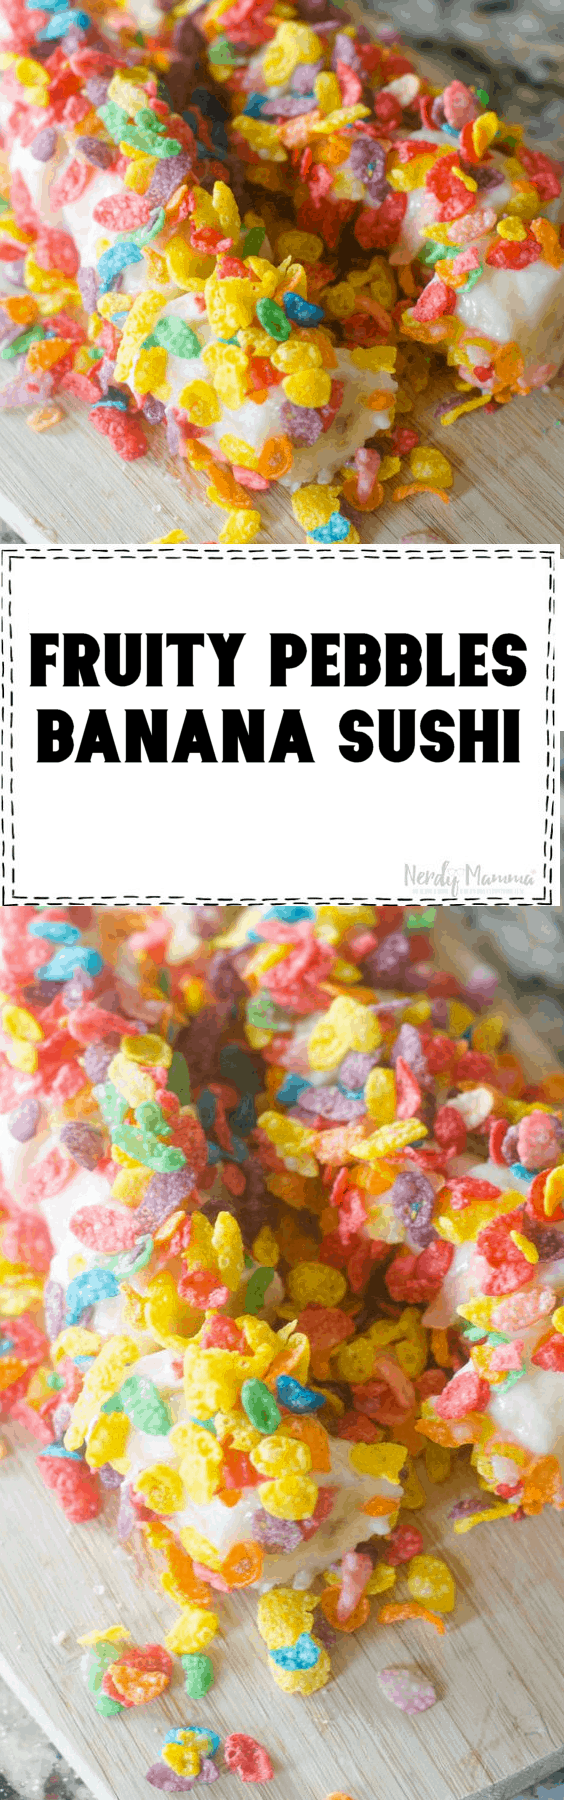 Fruity Pebble Banana Sushi